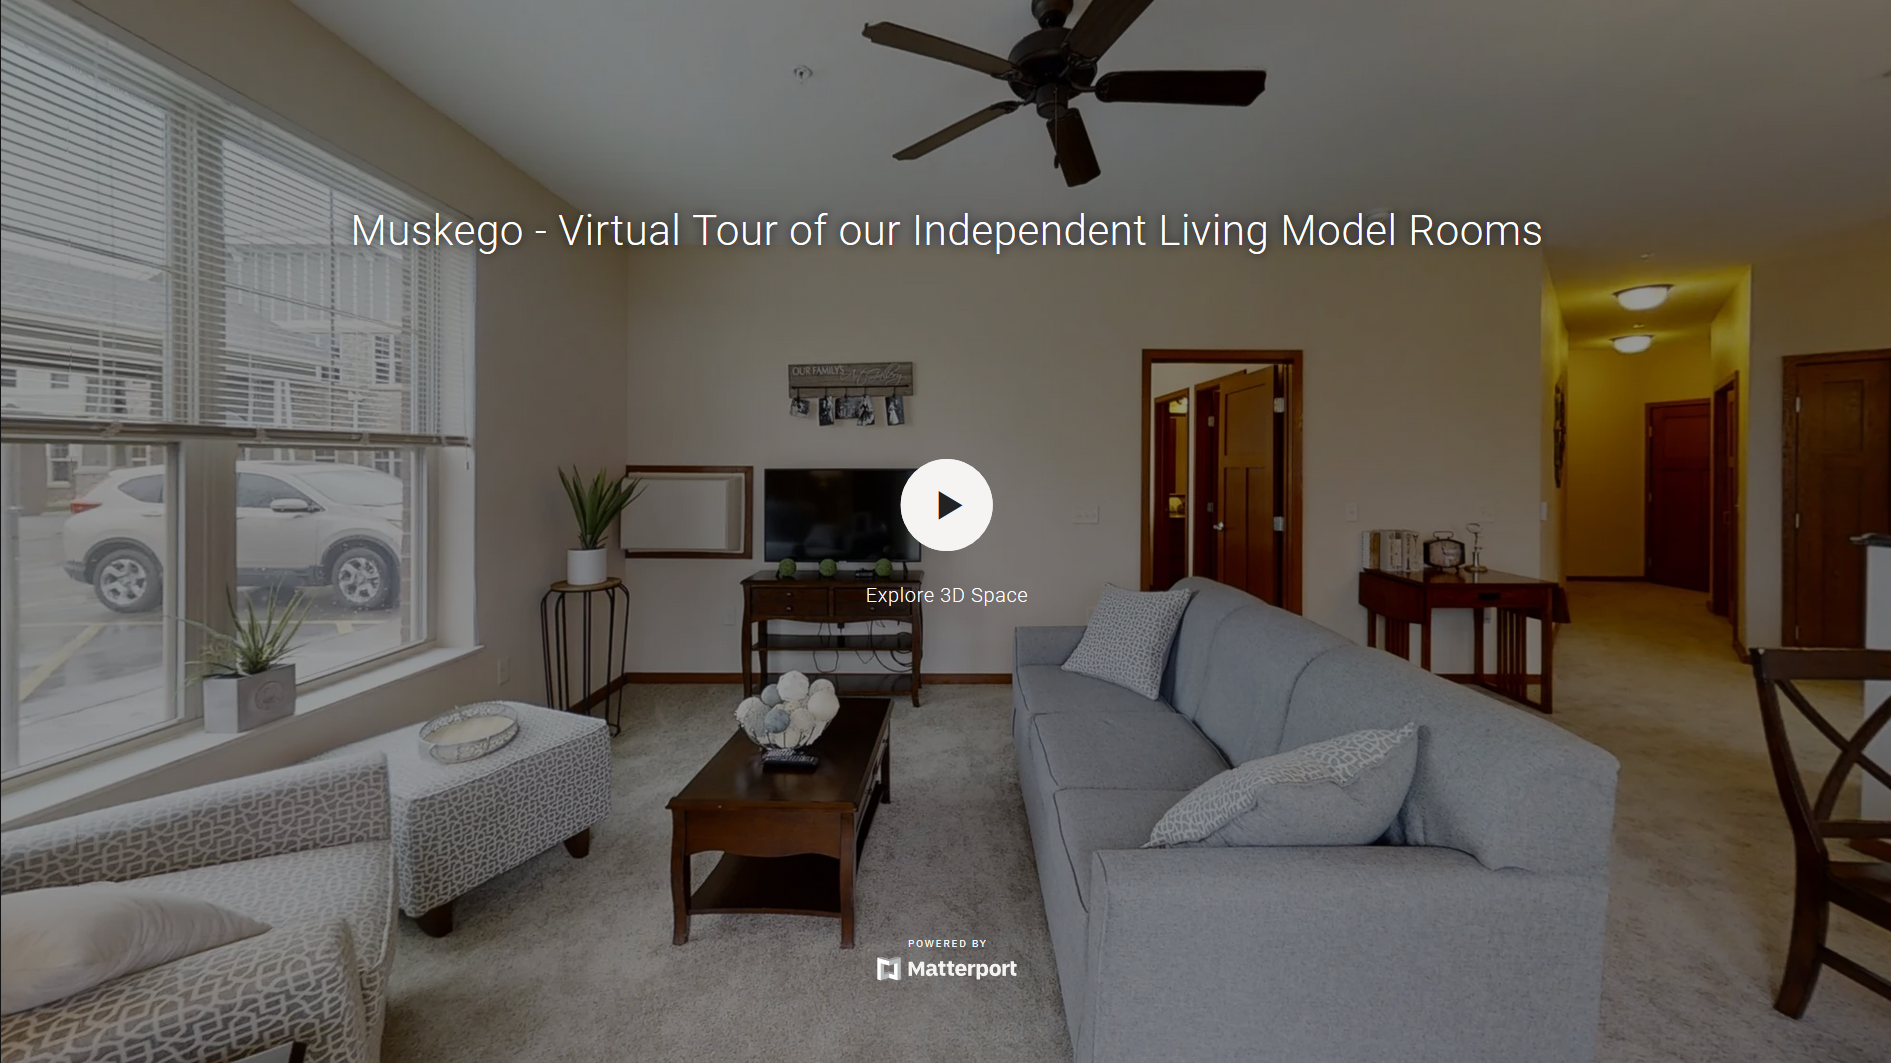 A 3D virtual tour of Heritage Muskego's independent living model rooms.